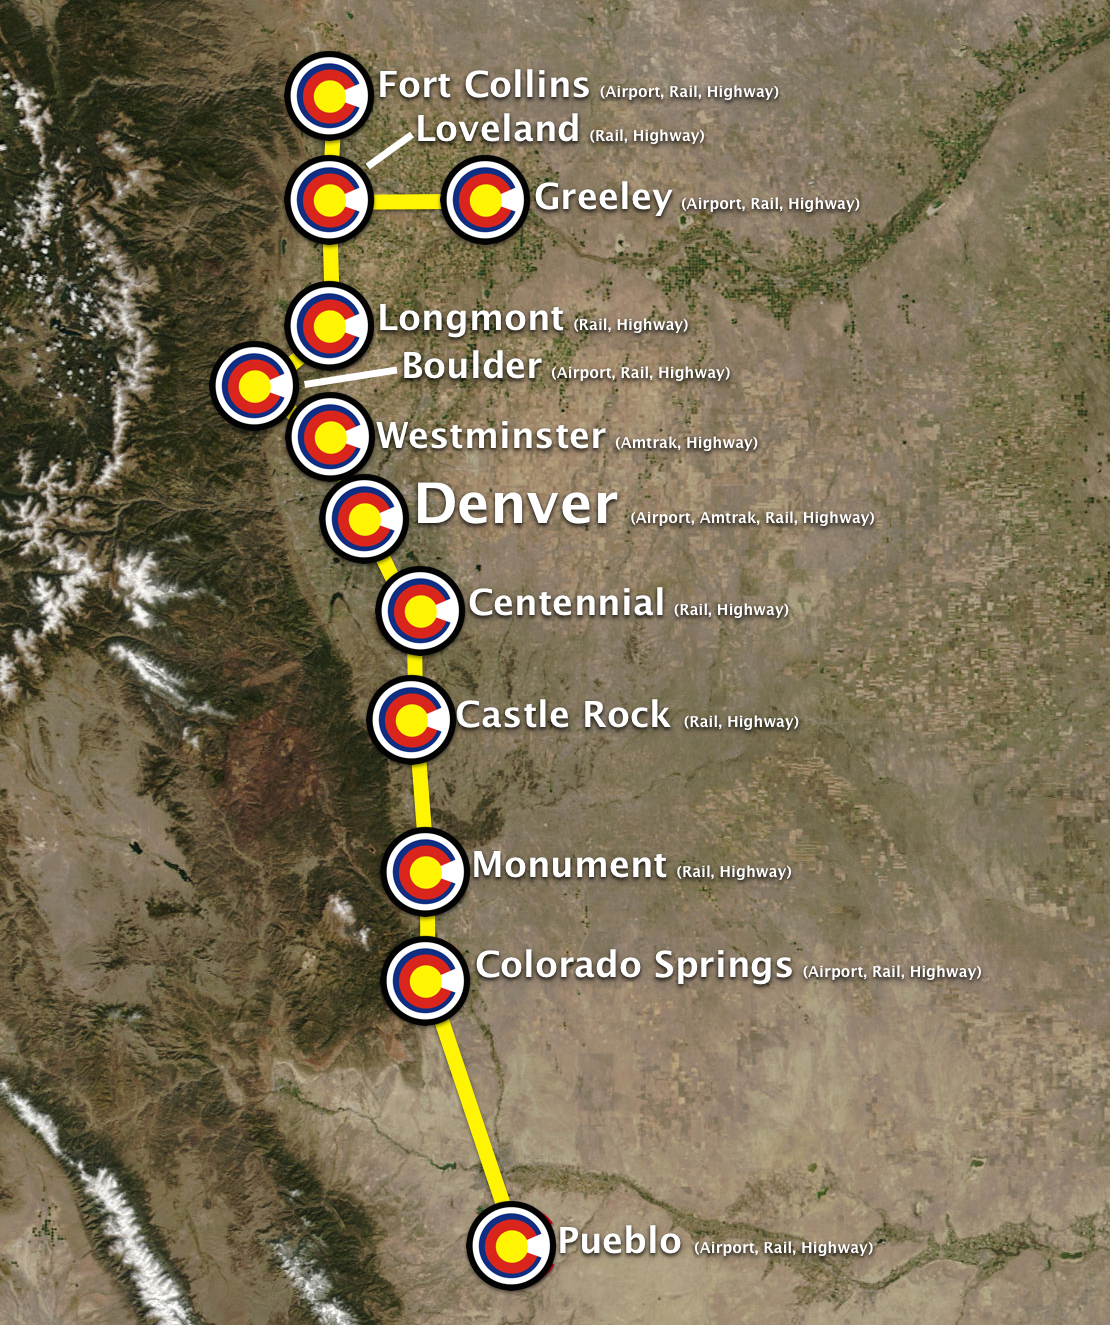 Hyperloop Connected Colorado Cities (Fort Collins, CO ↔ Greeley ↔ Loveland ↔ Longmont ↔ Boulder ↔ Westminster ↔ Denver ↔ Centennial ↔ Monument ↔ Castle Rock ↔ Colorado Springs ↔ Pueblo )